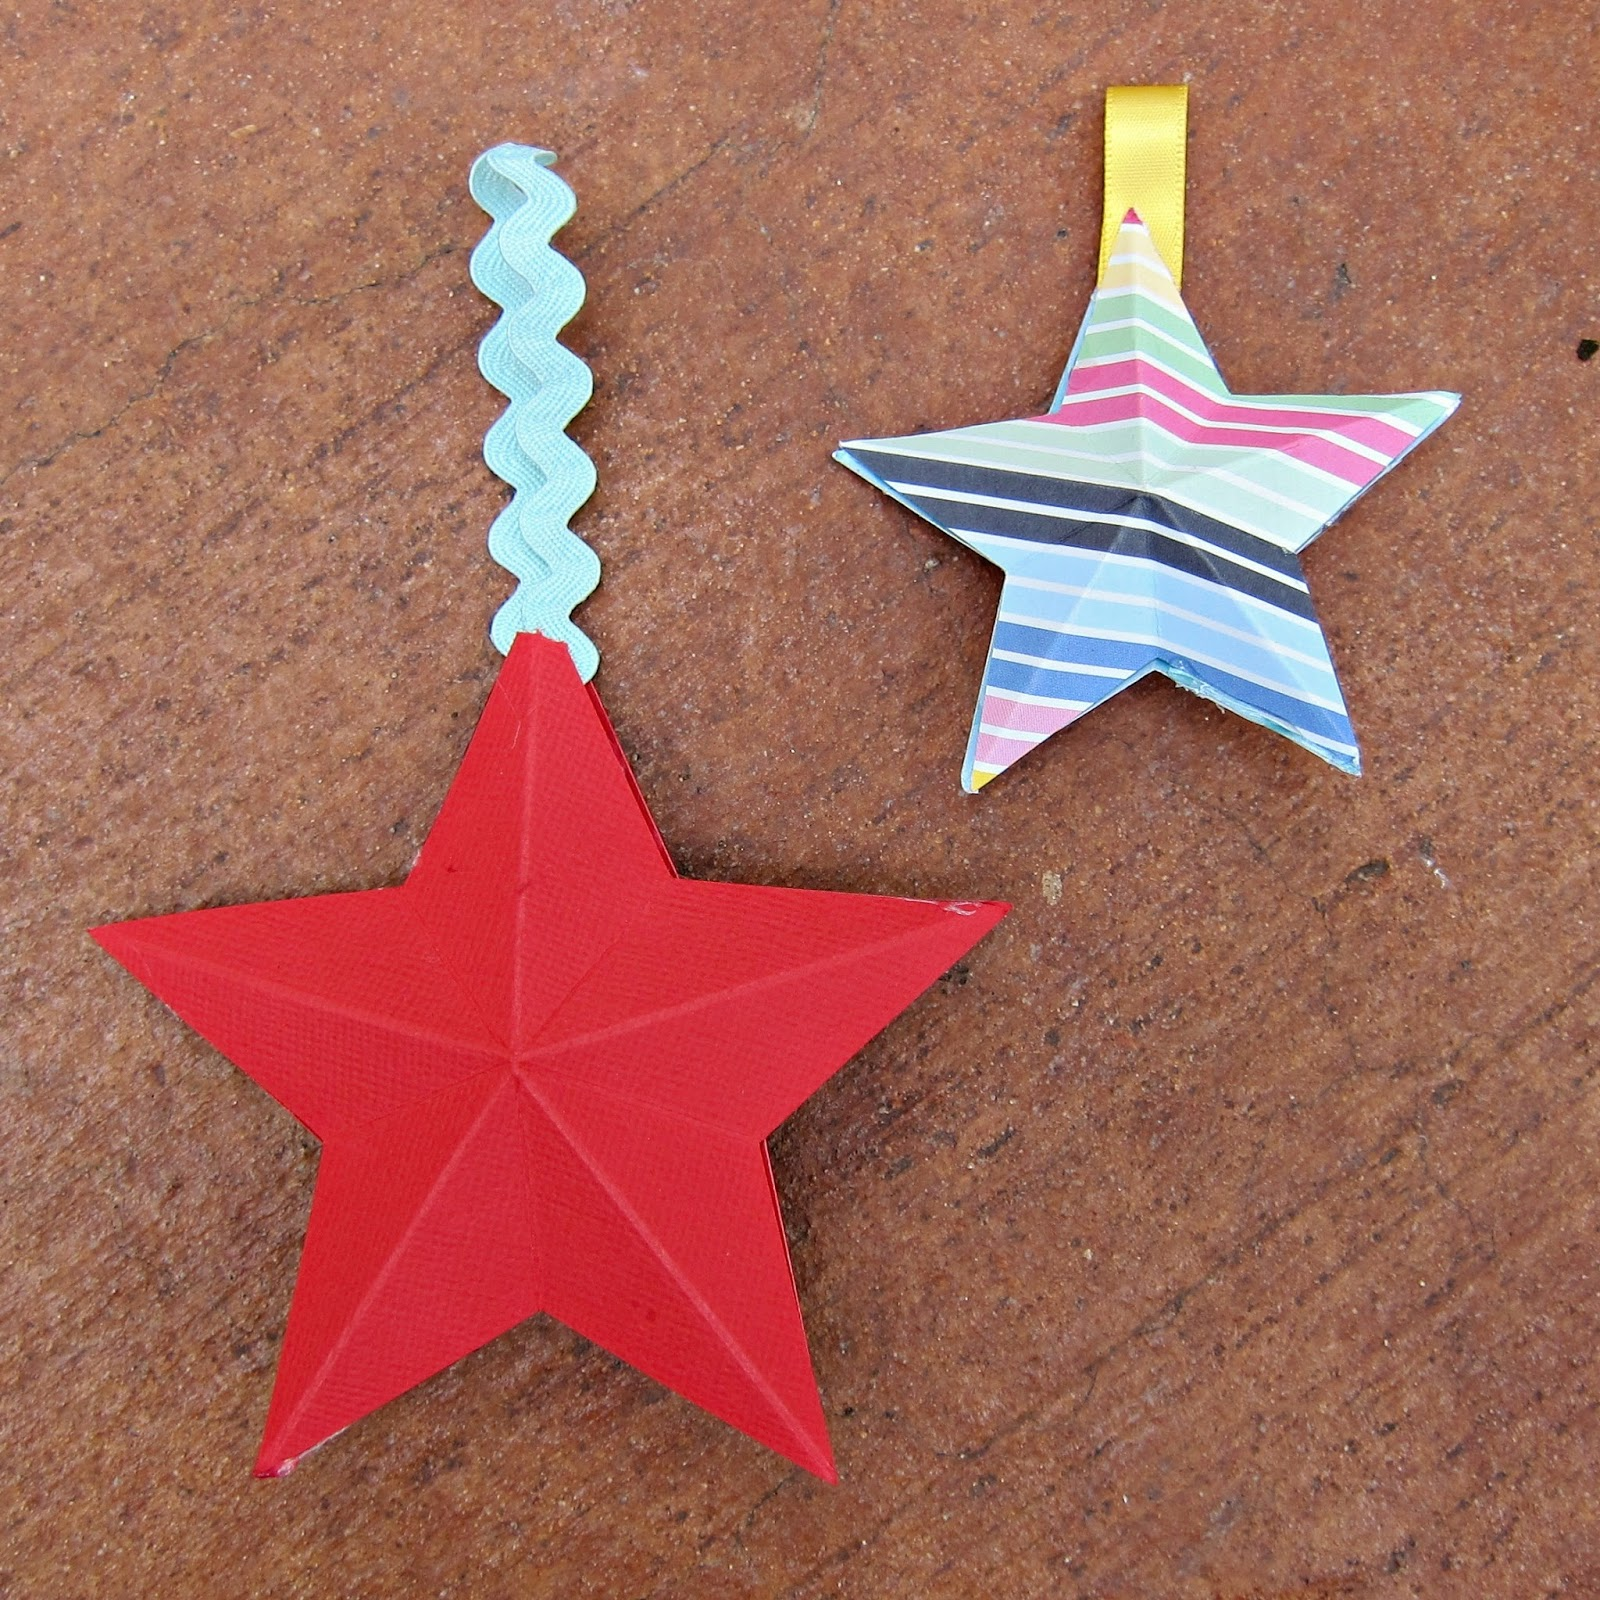 How to Make 3D Paper Stars